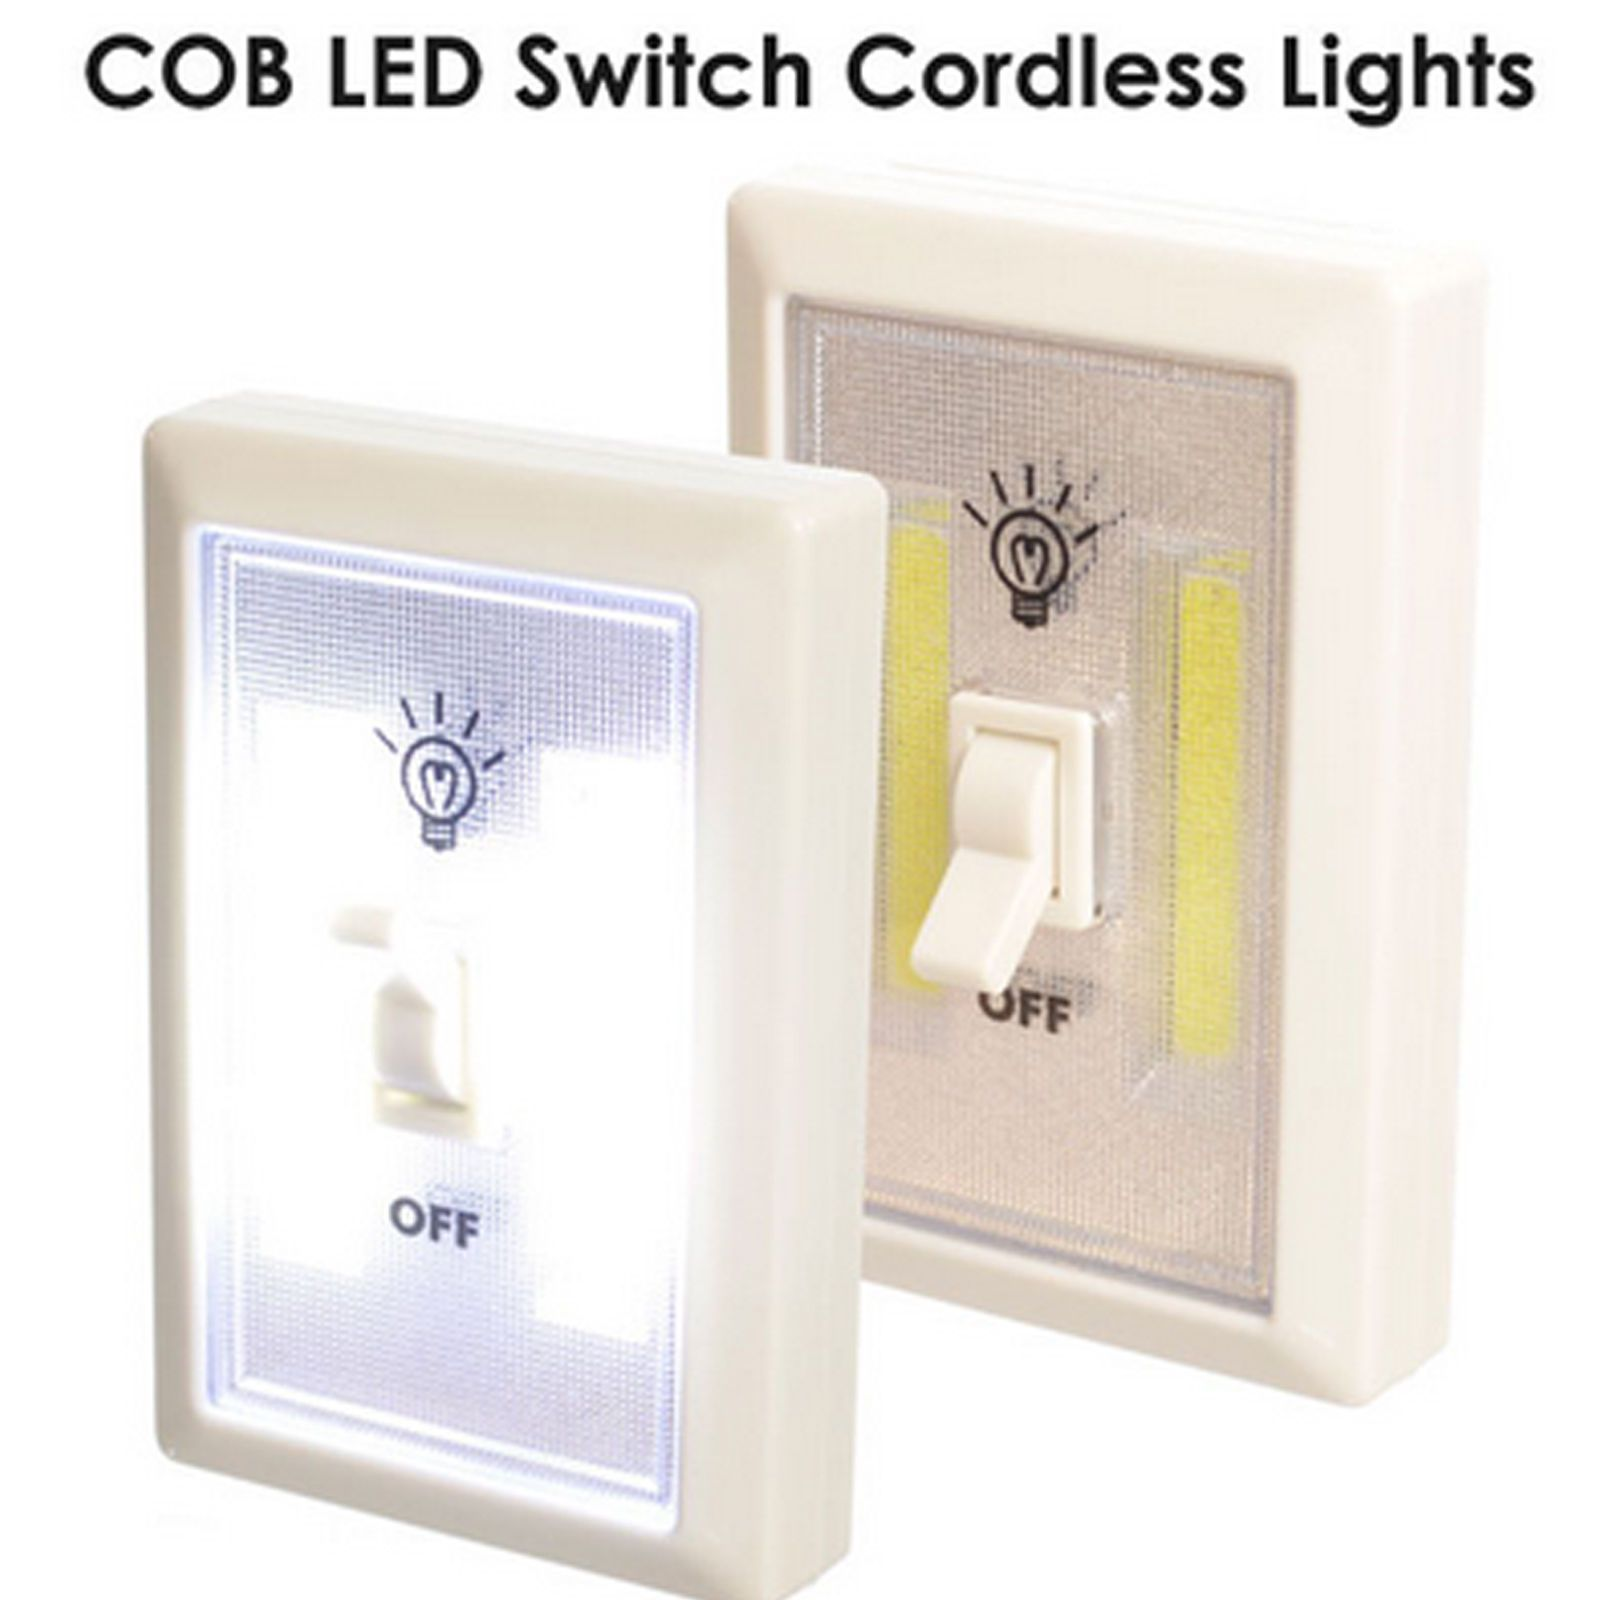 pcs cob led wall switch wireless battery operated closet cordless